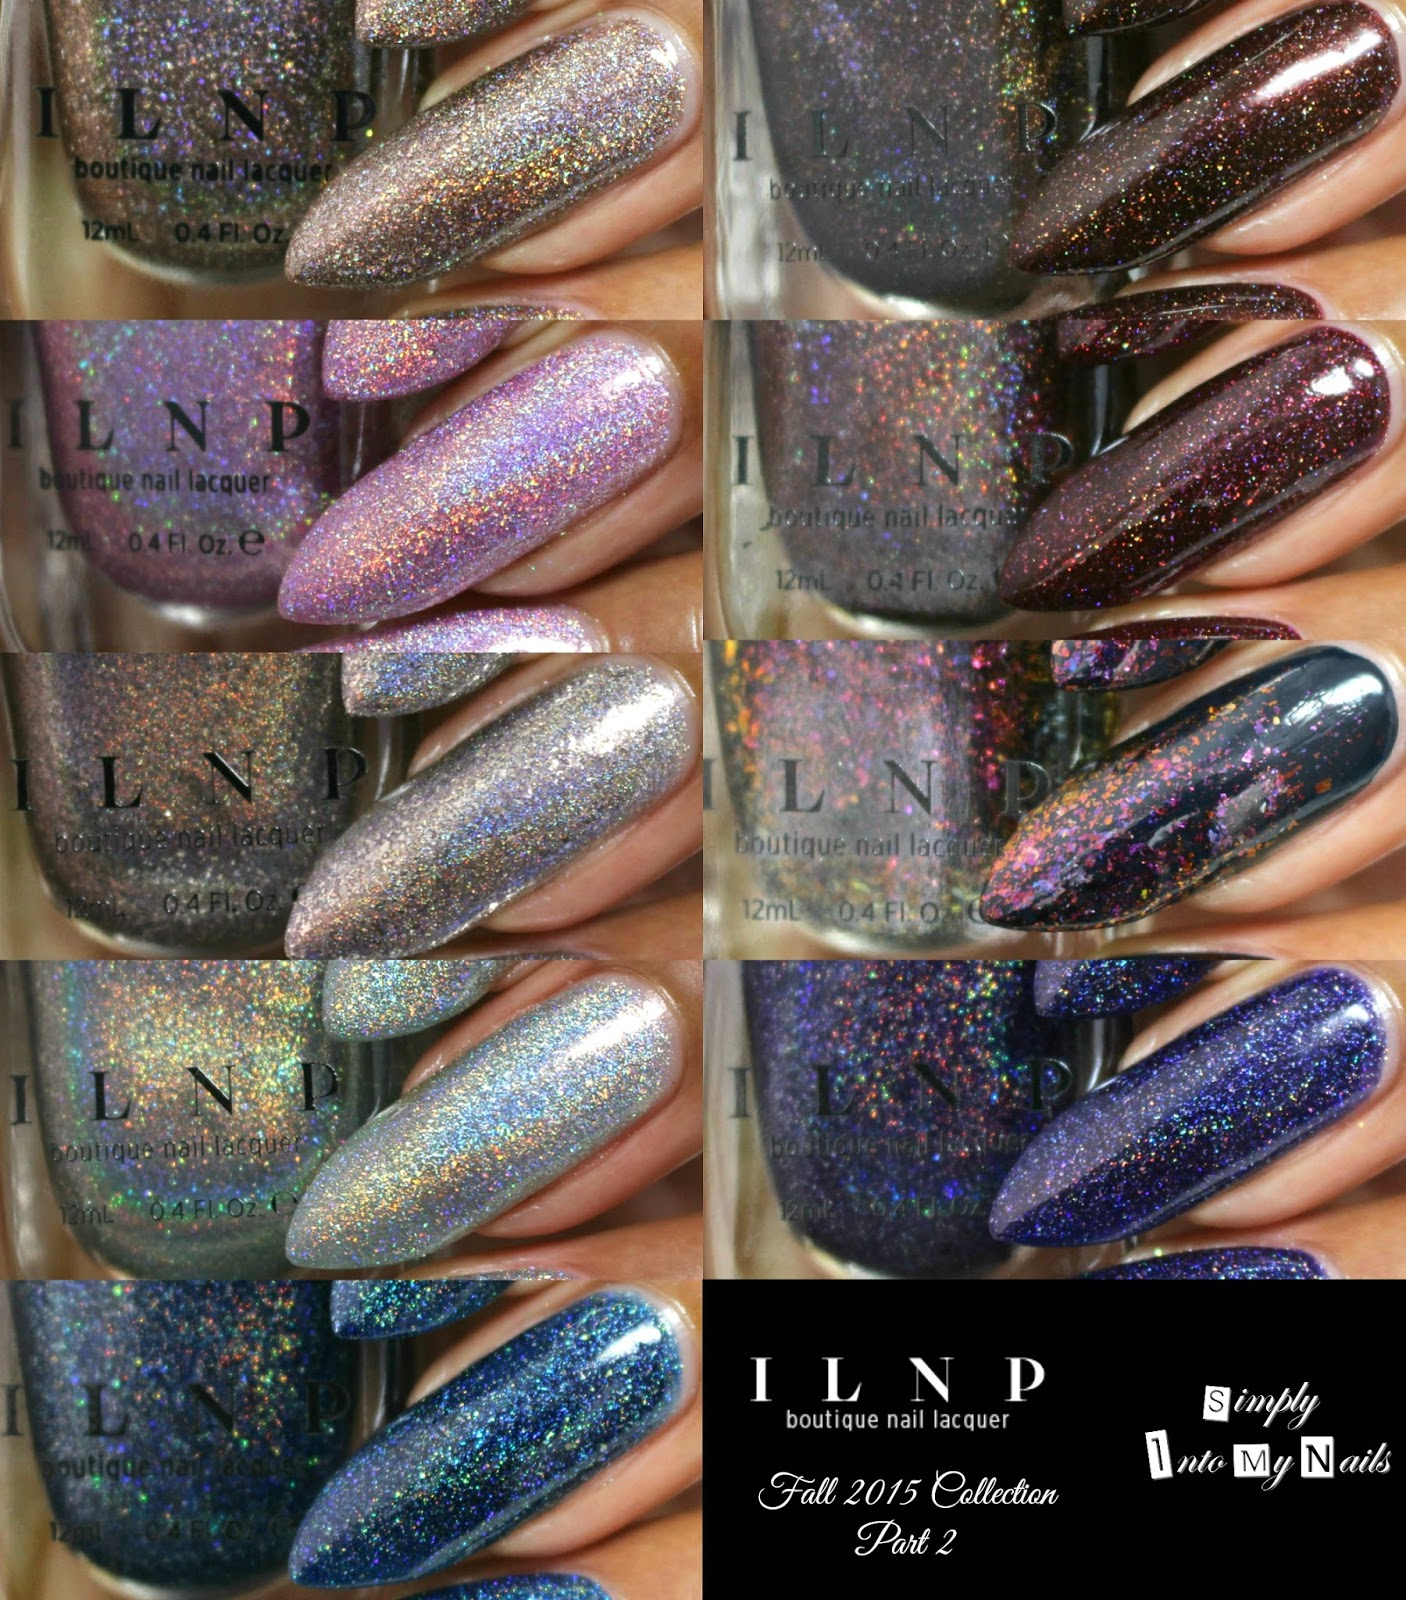 ILNP Fall 2015 Collection - Part 2 | Simply Into My NAILS